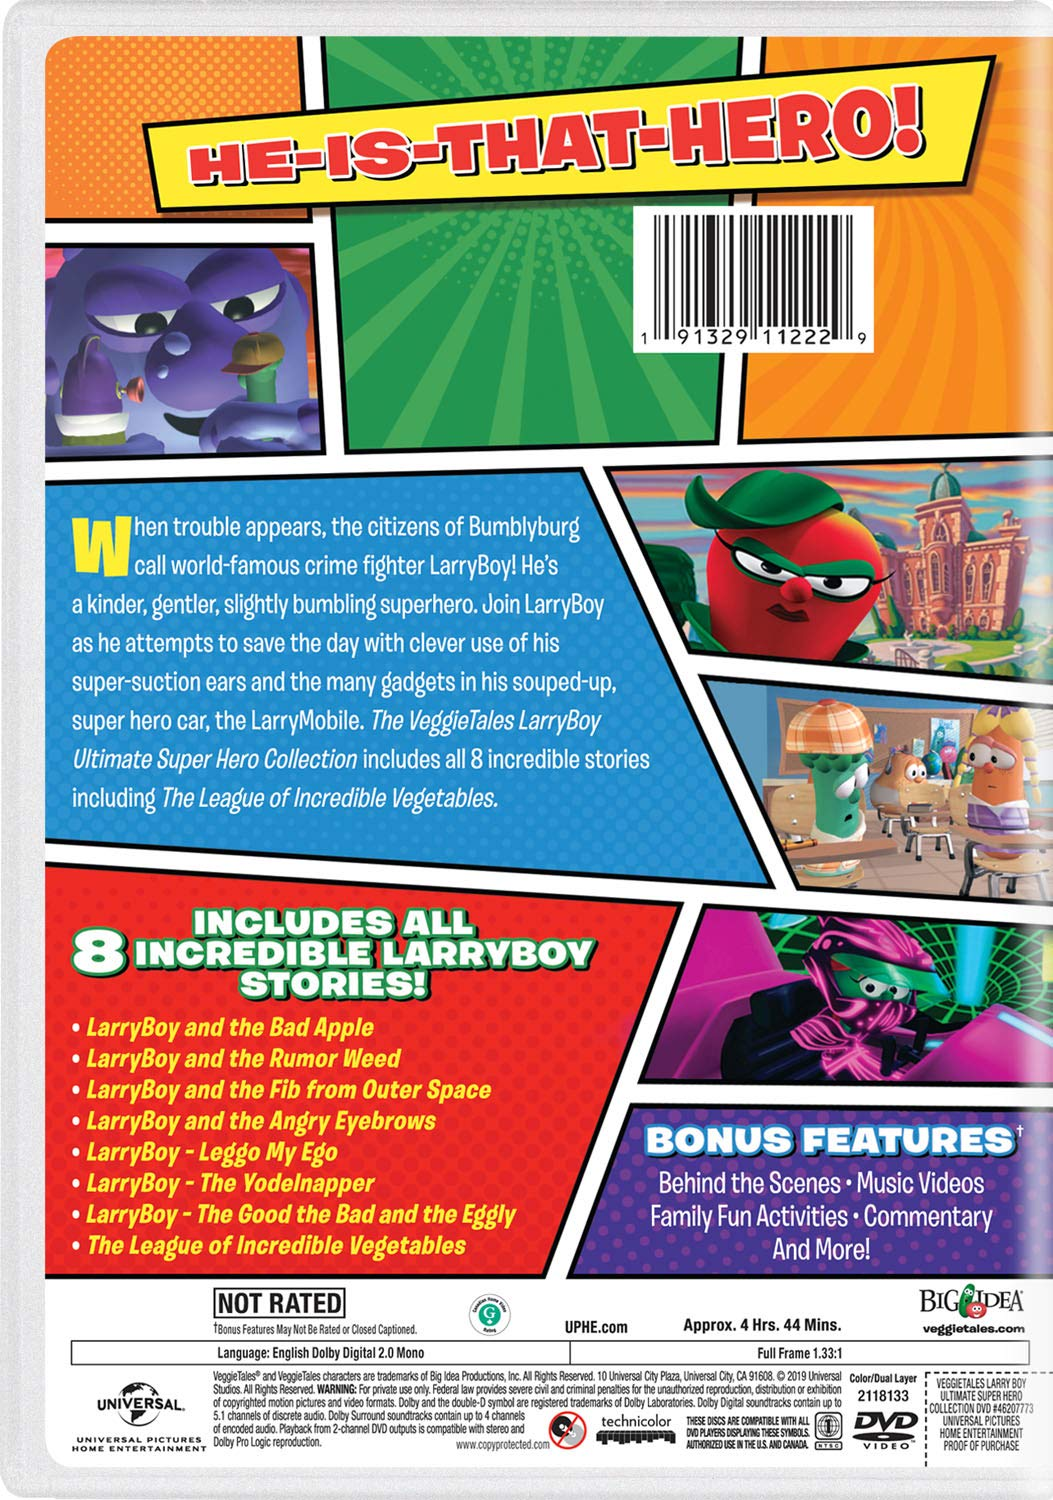 LarryBoy Ultimate Super Hero Collection